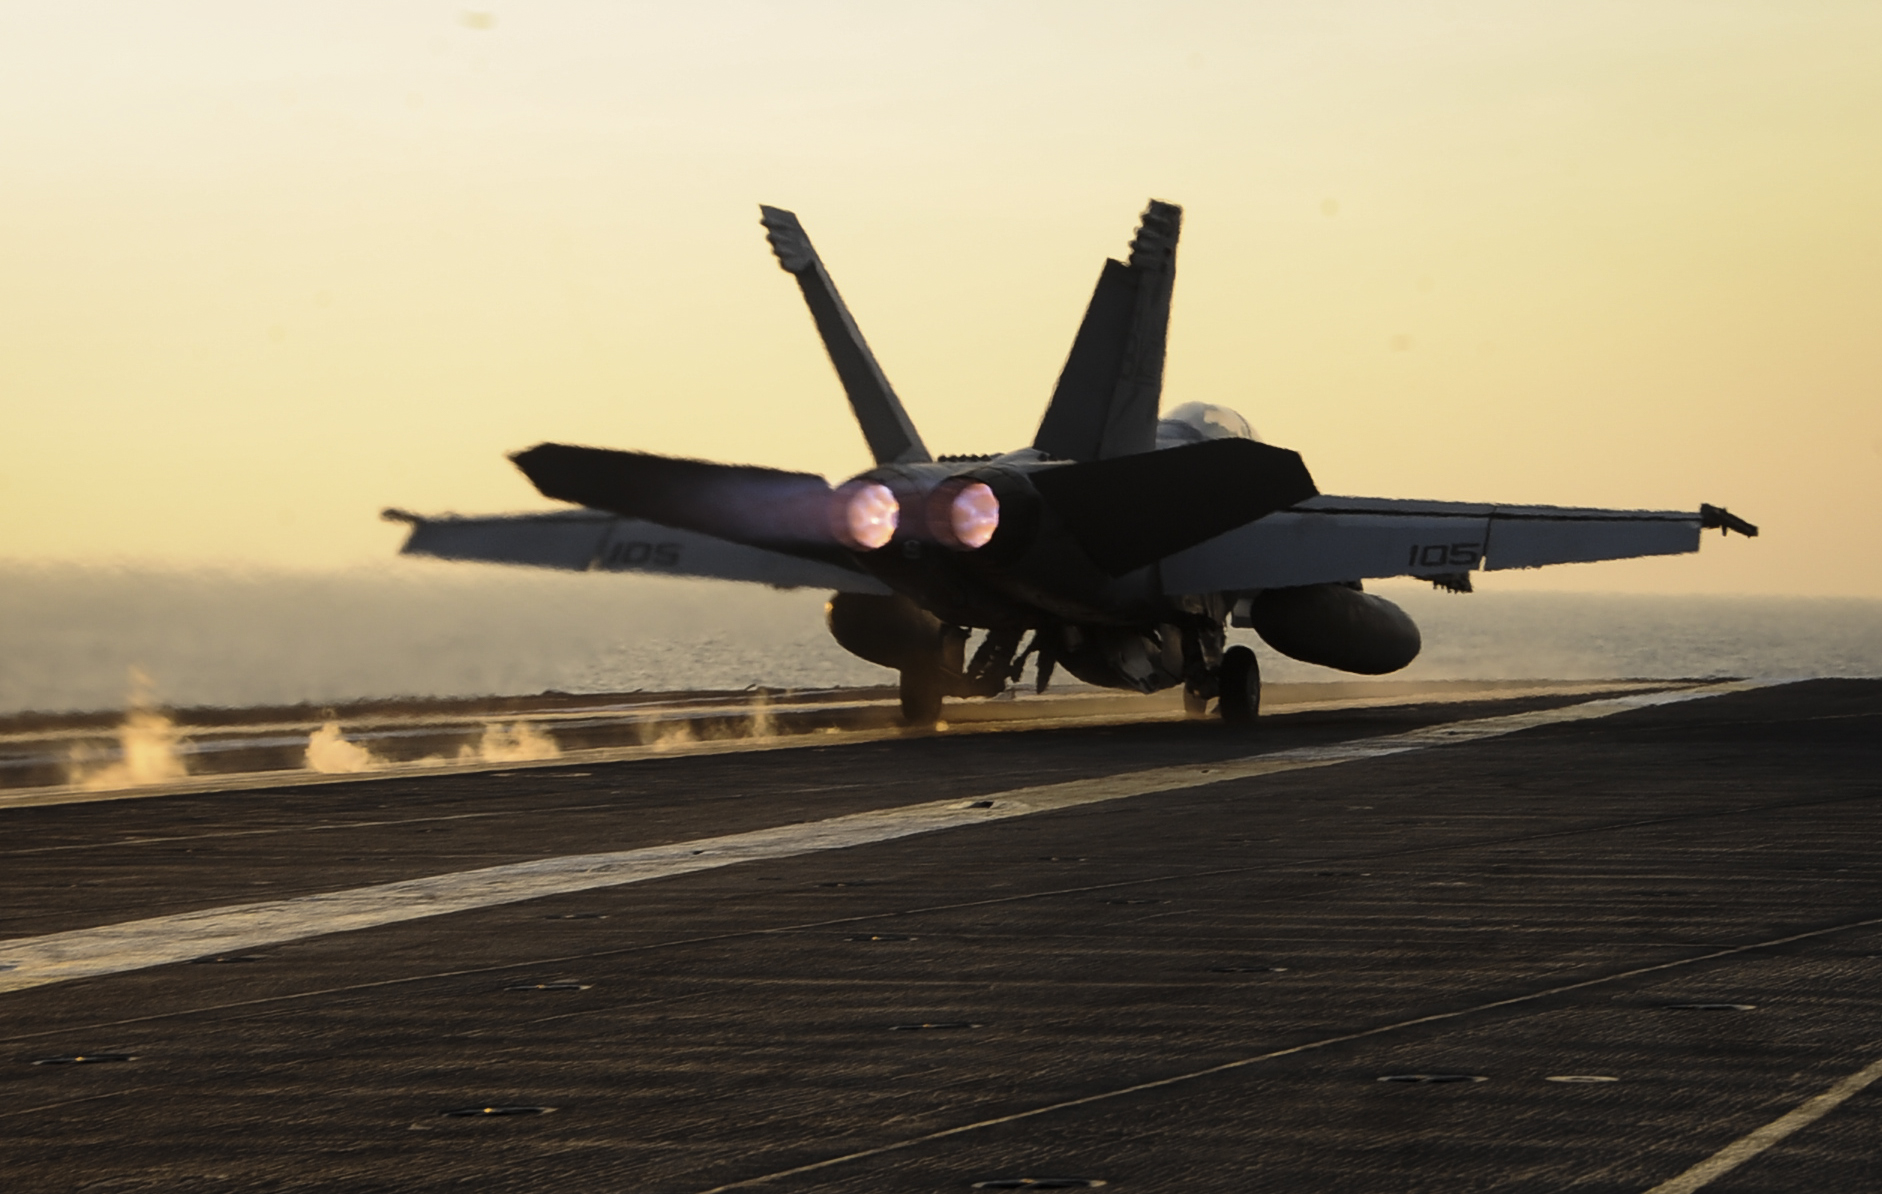 An F/A-18F Super Hornet assigned to the Red Rippers of Strike Fighter Squadron (VFA) 11 launches from the flight deck of the aircraft carrier USS Theodore Roosevelt (CVN 71) on Oct. 10, 2015 in support of operations against the Islamic State of Iraq and Syria. US Navy photo.